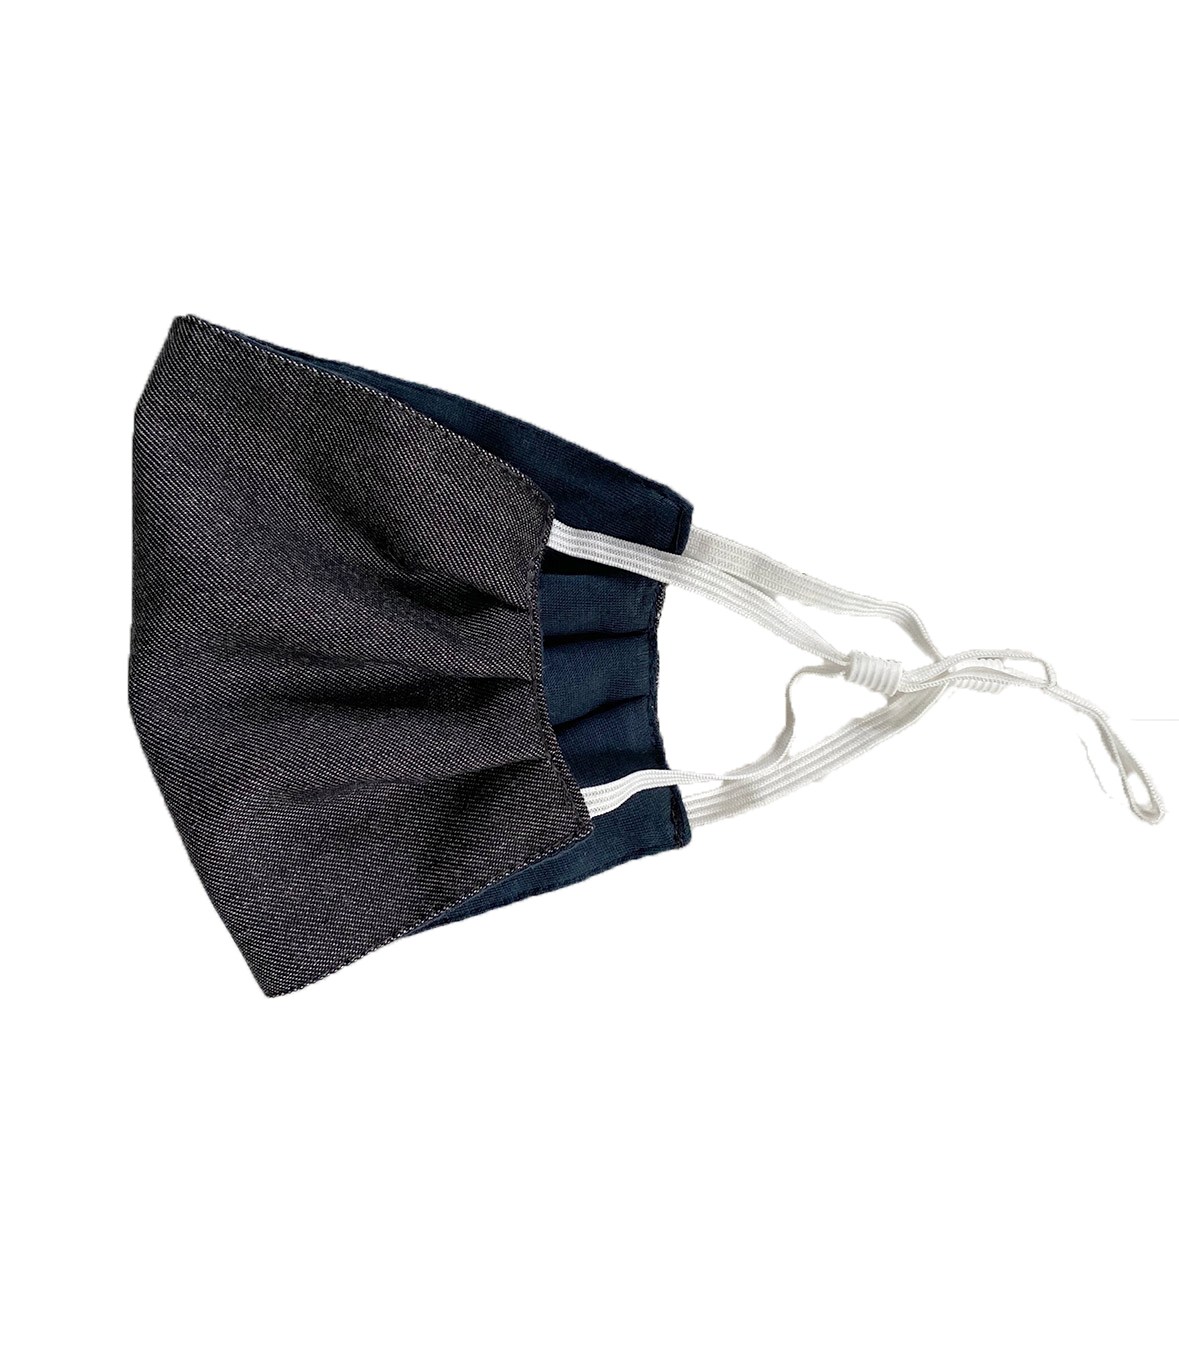 Wool/Cotton Face Mask Made in USA | RAMBLERS WAY